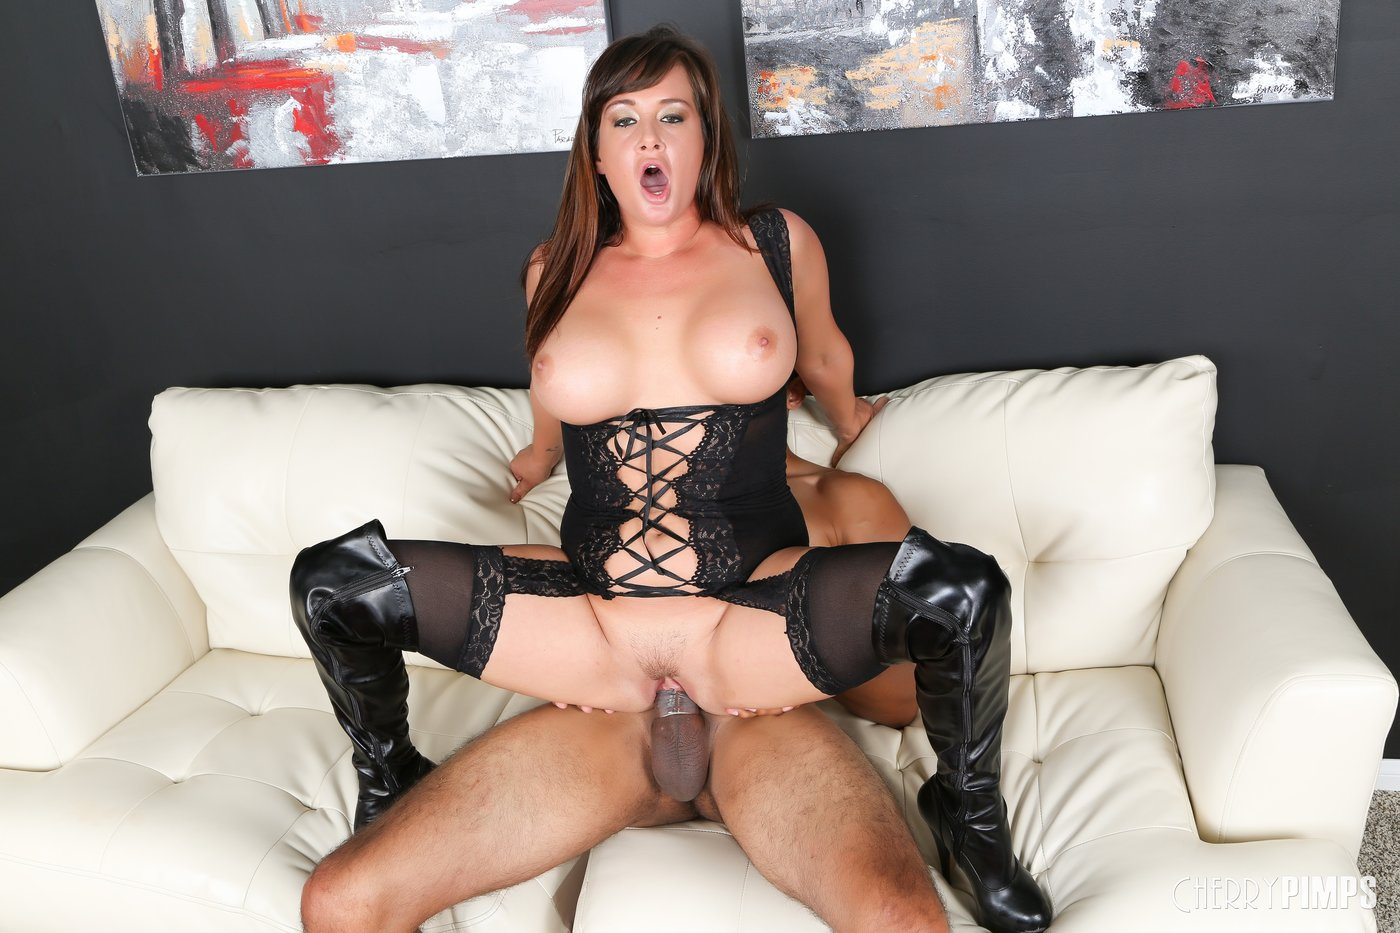 Big tits tory fucked from behind and screwed her ass 8